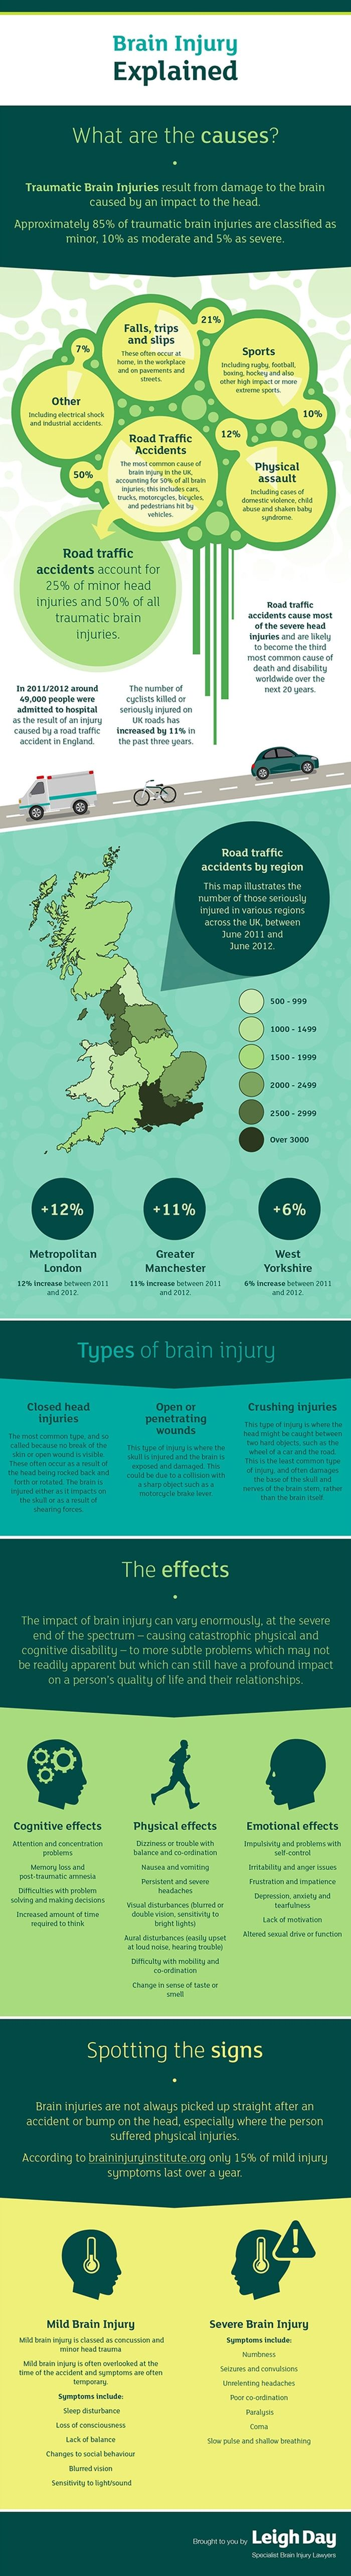 Brain Injury Explained (infographic)